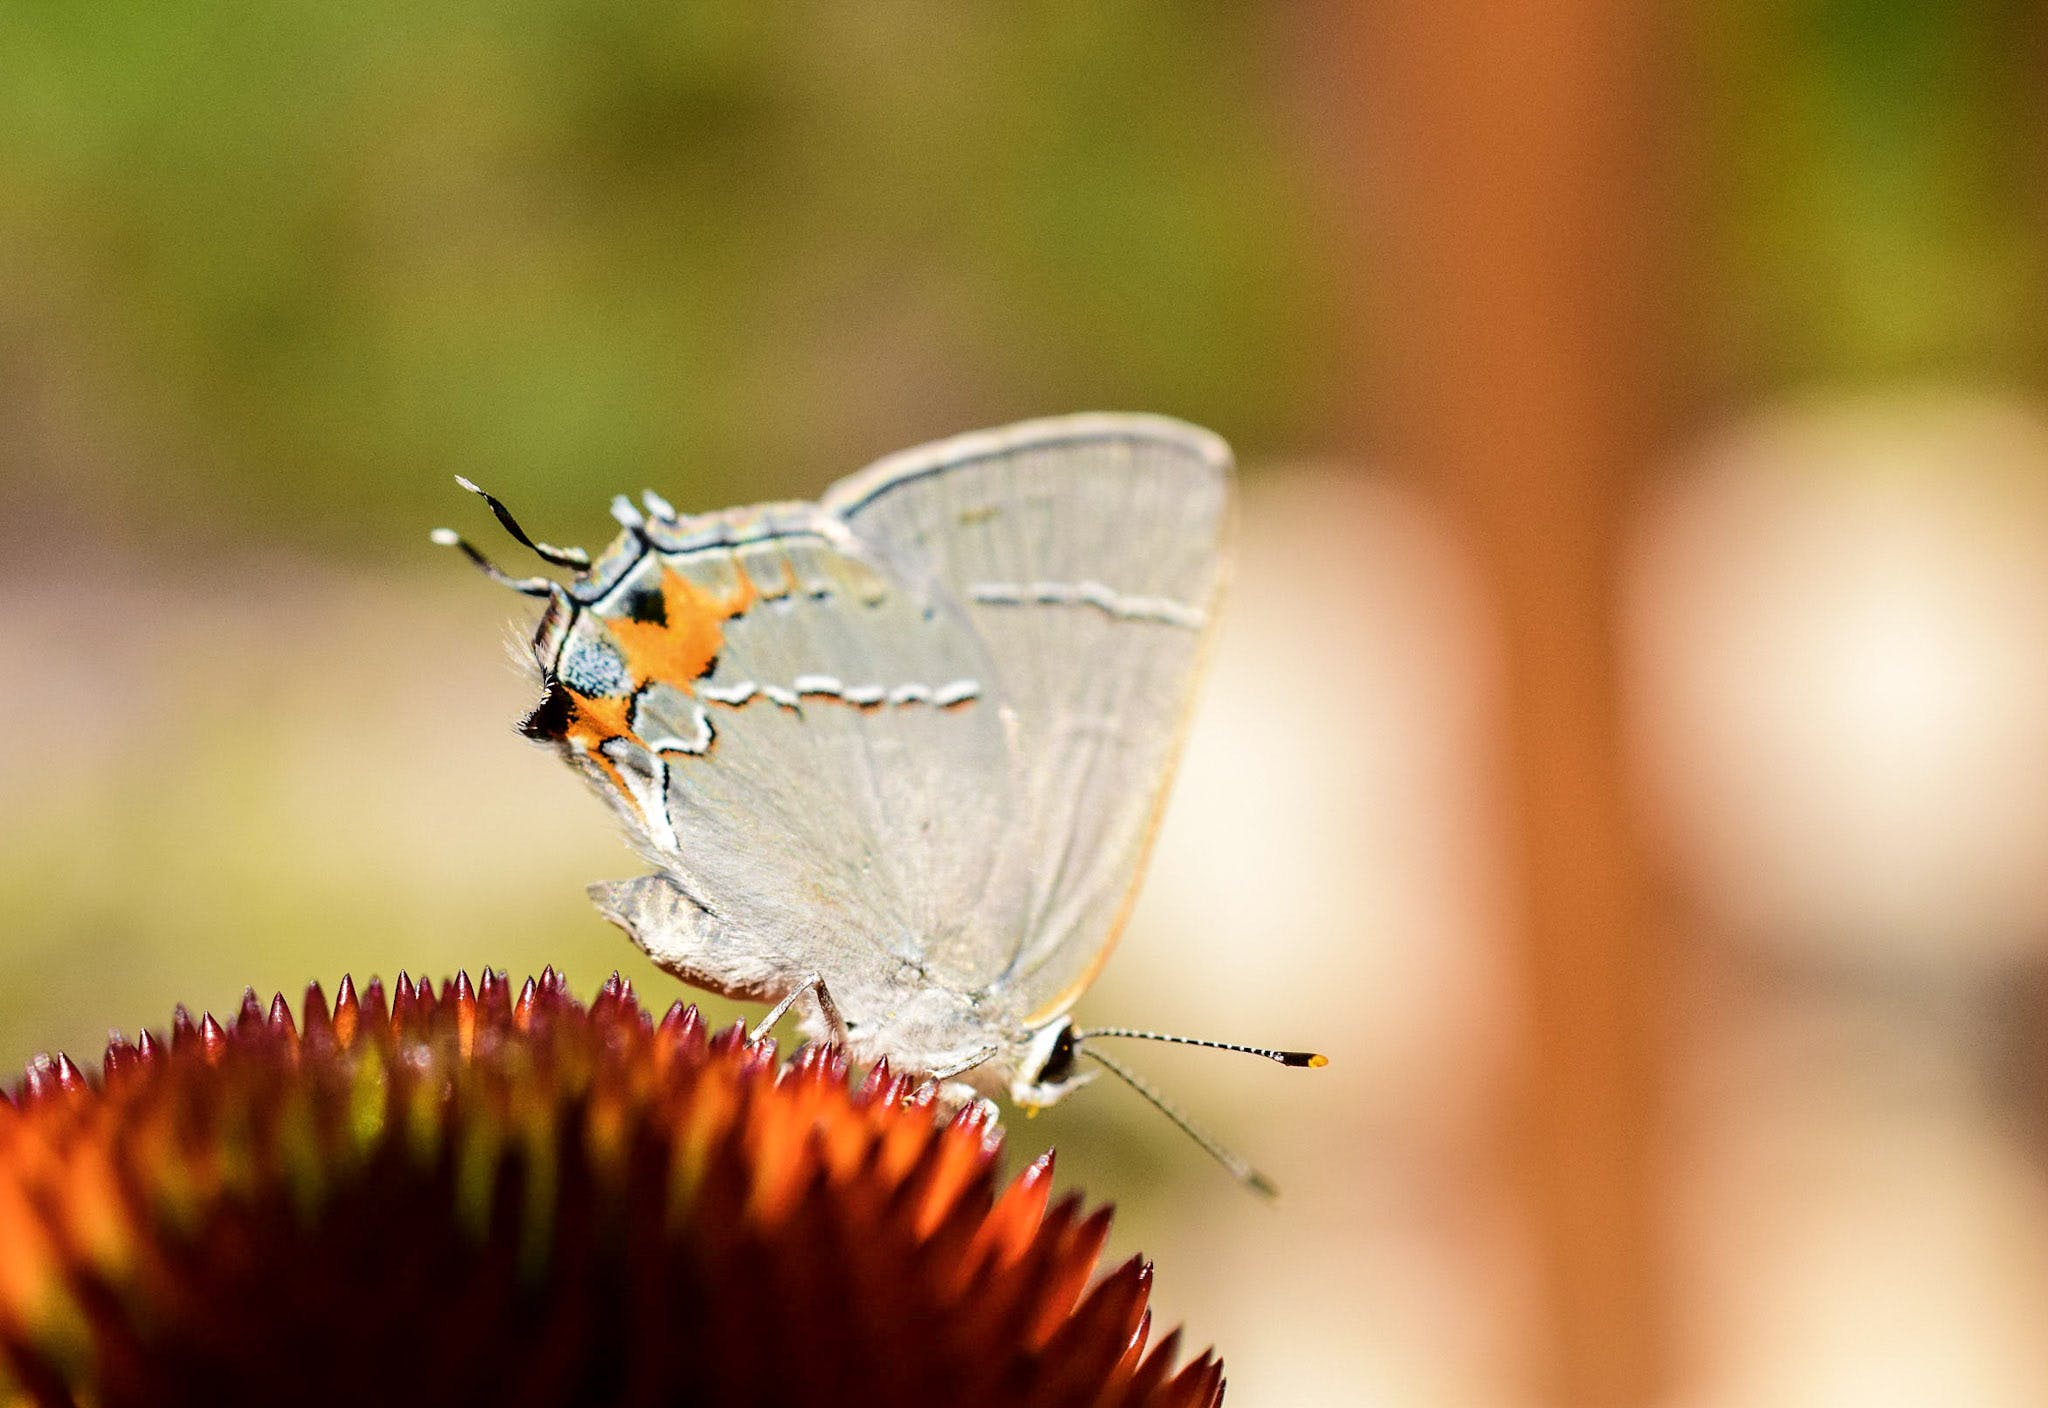 White Butterfly Perched on Red Flower